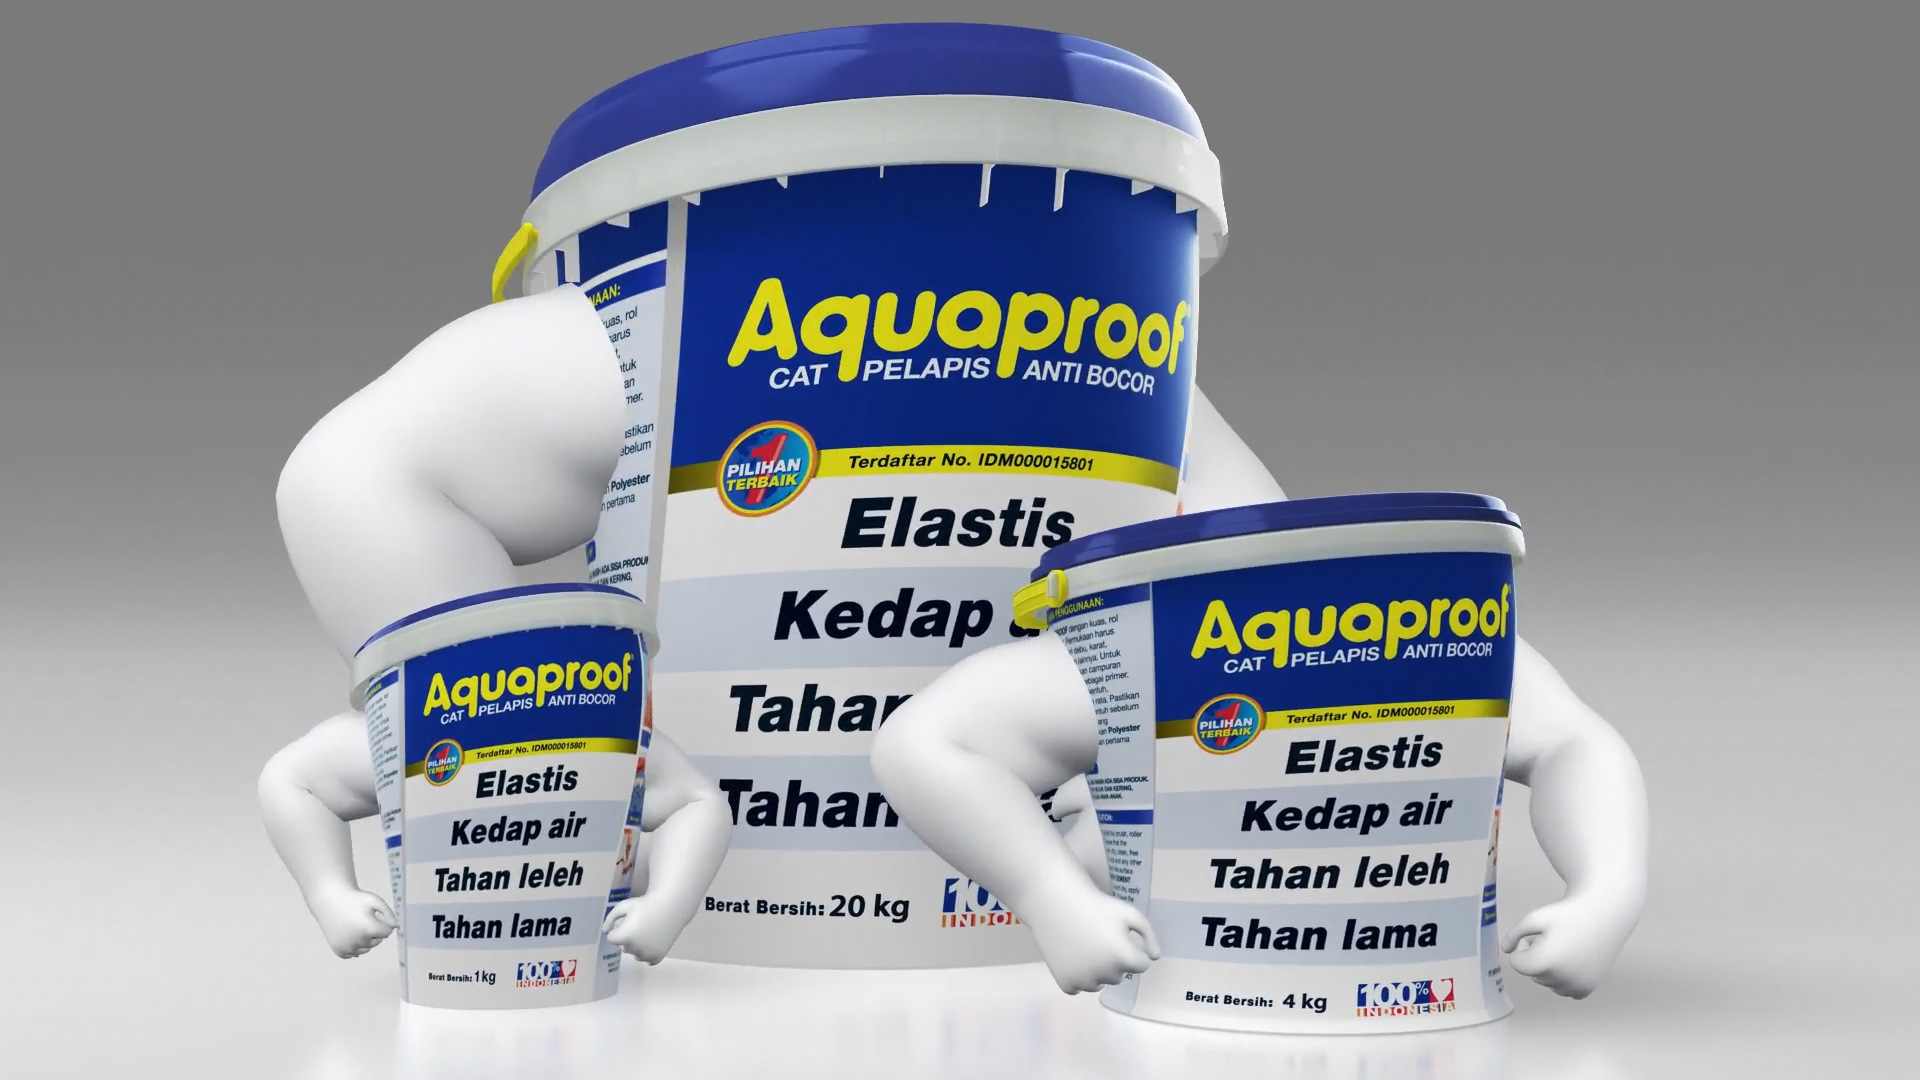 Aquaproof - Transformation